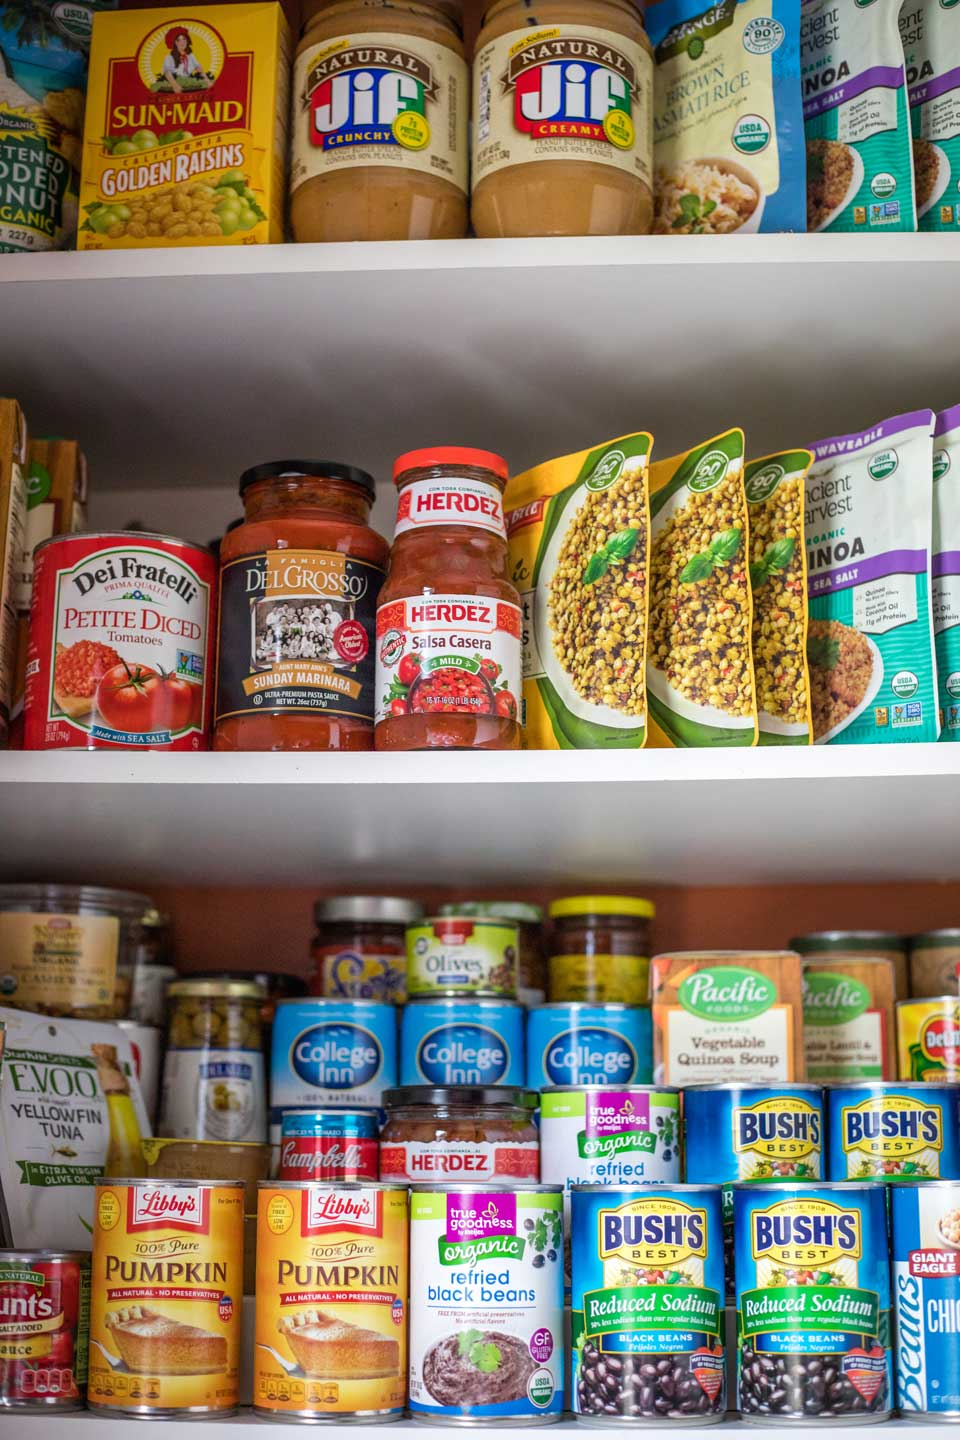 3 pantry shelves stocked with shelf-stable ingredients like canned beans and pumpkin, peanut butter, jarred salsa and pasta sauce, etc.